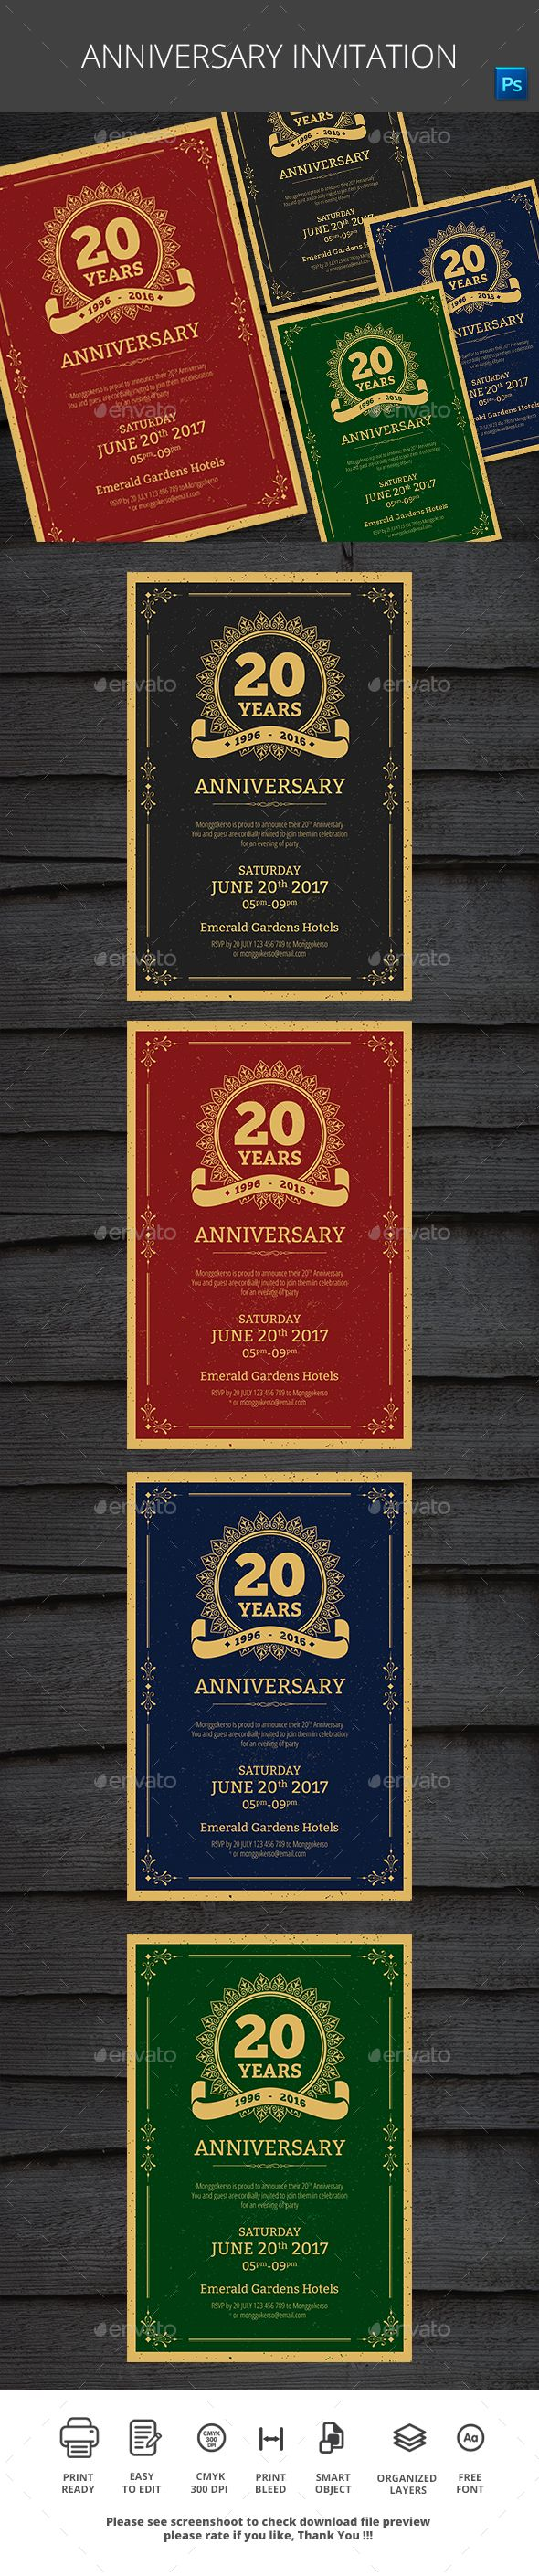 business event invitation templates%0A  Anniversary  Invitation  Cards  u     Invites Print Templates Download here   https